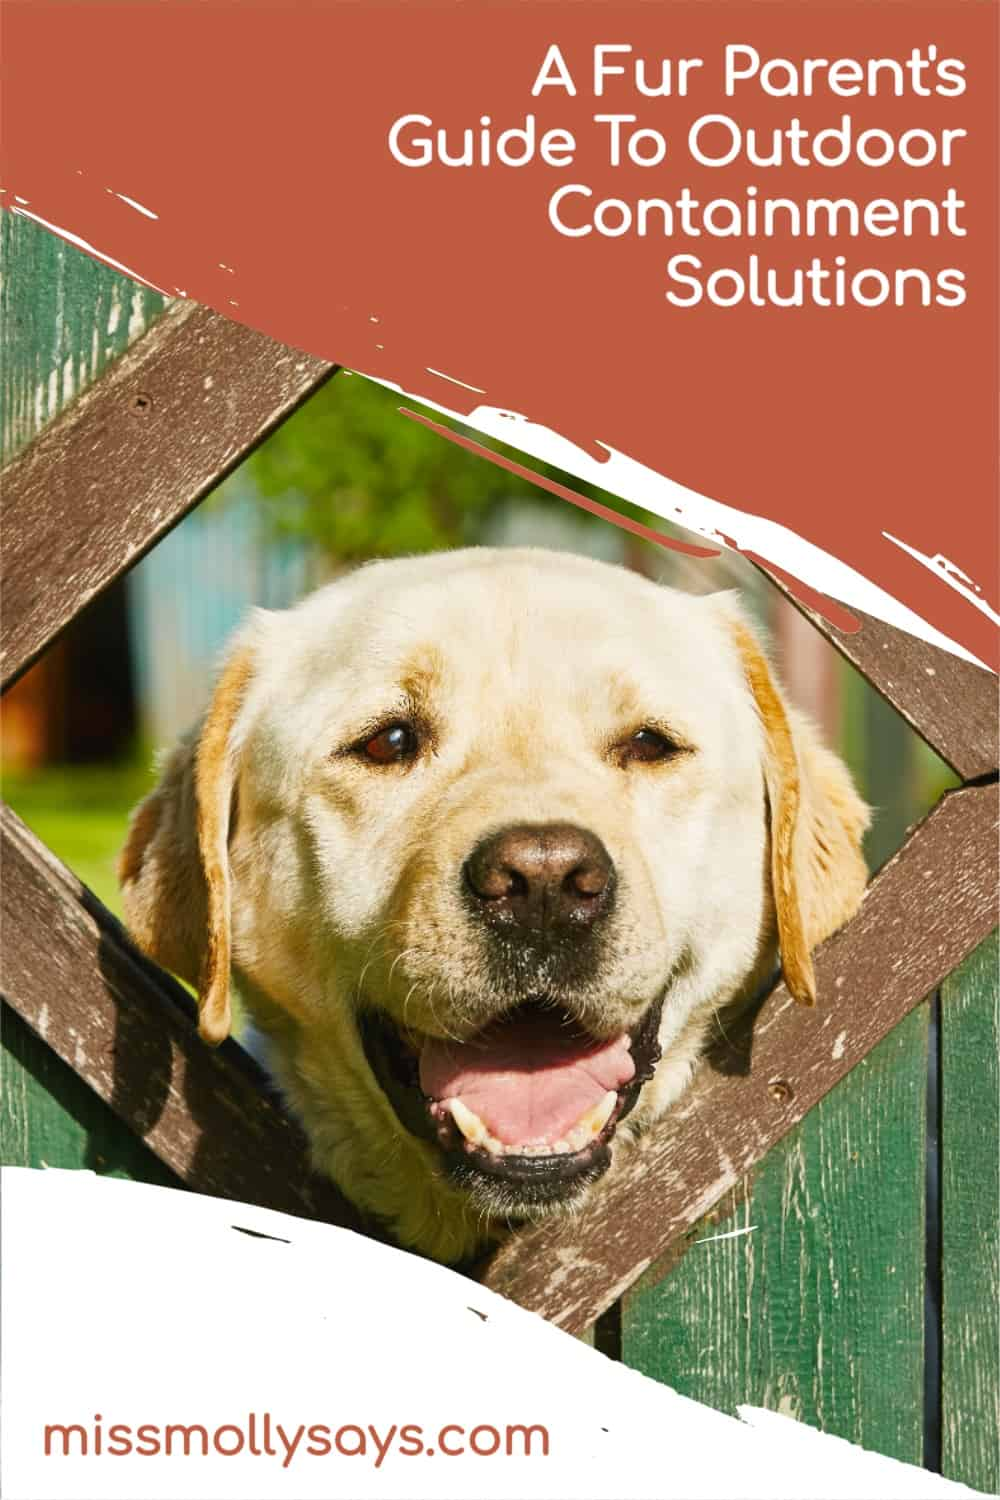 A Fur Parent's Guide To Outdoor Containment Solutions